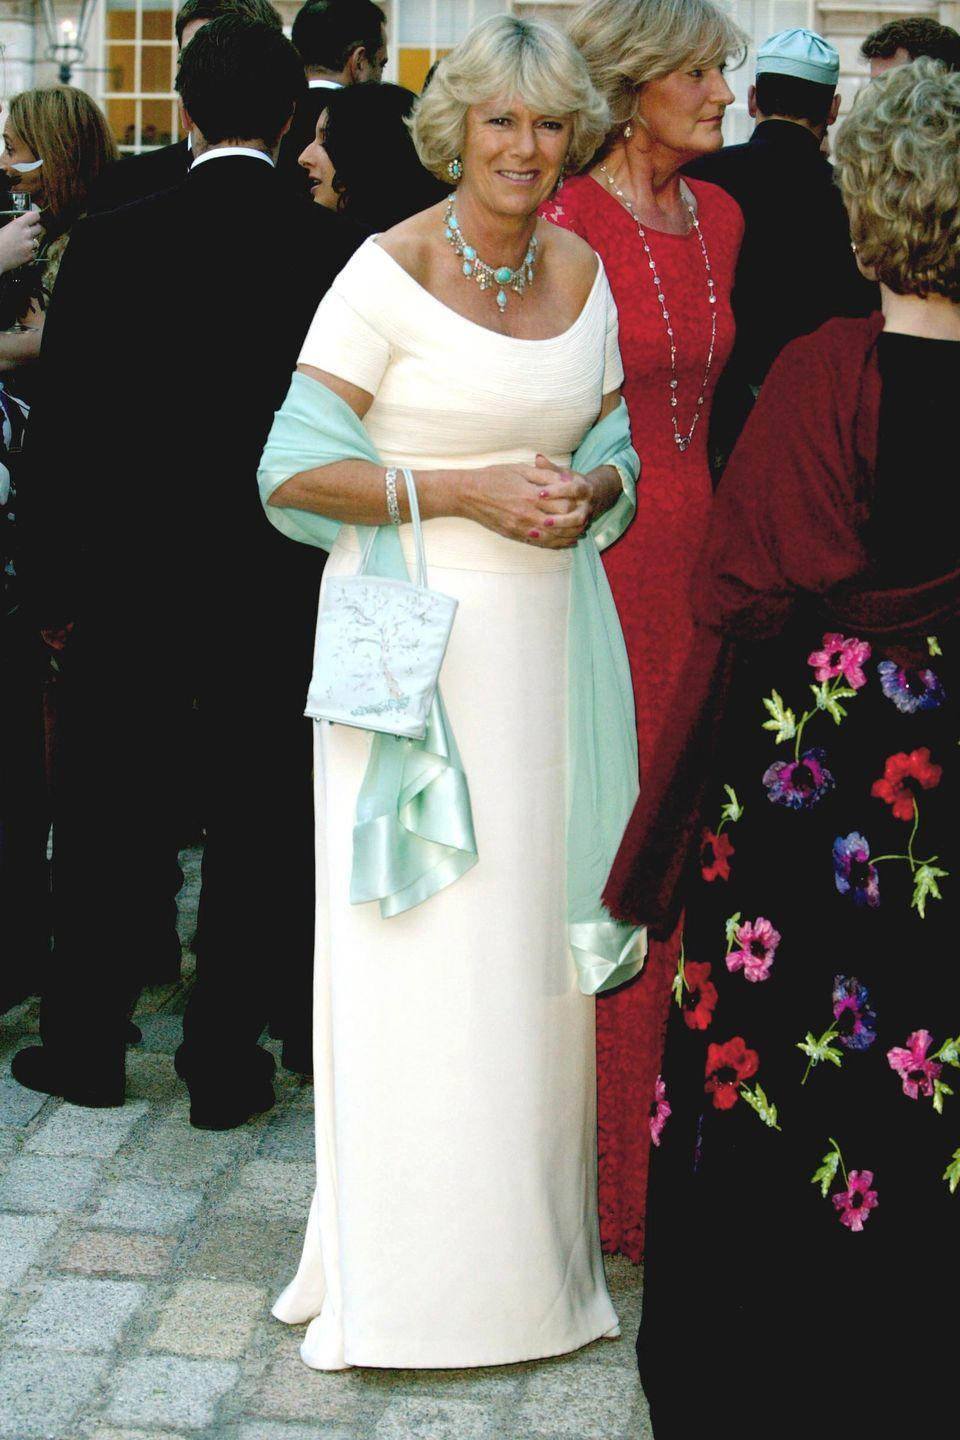 <p>For a summer fete at Somerset House in London, Camilla wore a long, shoulder-sweeping cream dress with pops of turquoise. </p>